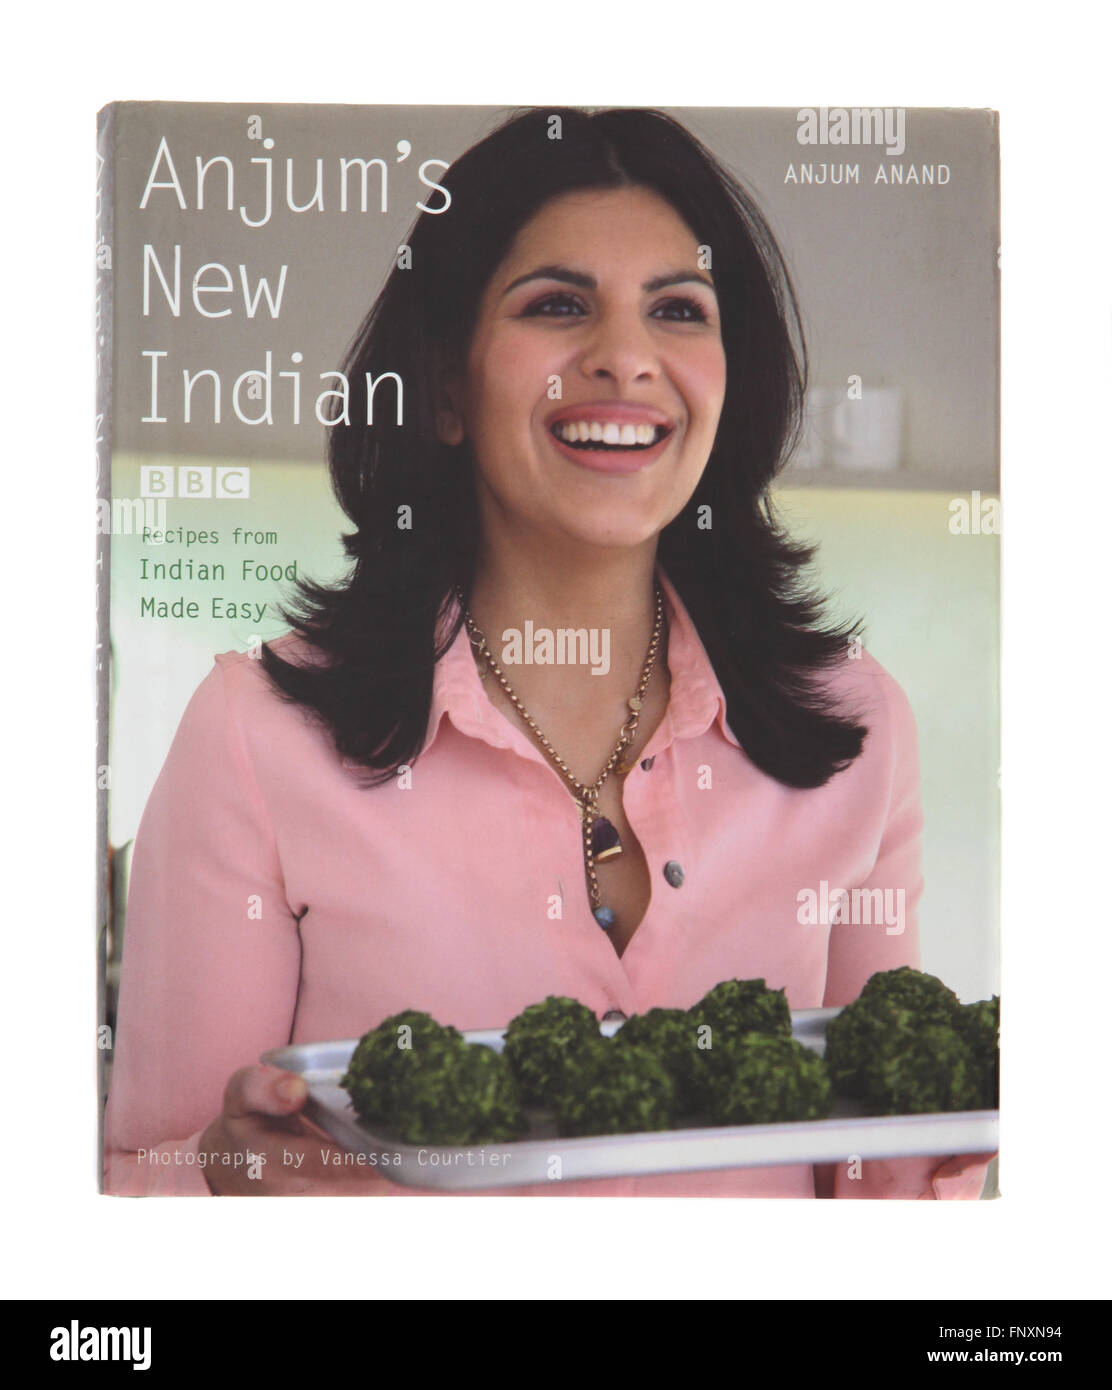 The Recipe Book Anjums New Indian By Anjum Anand Stock